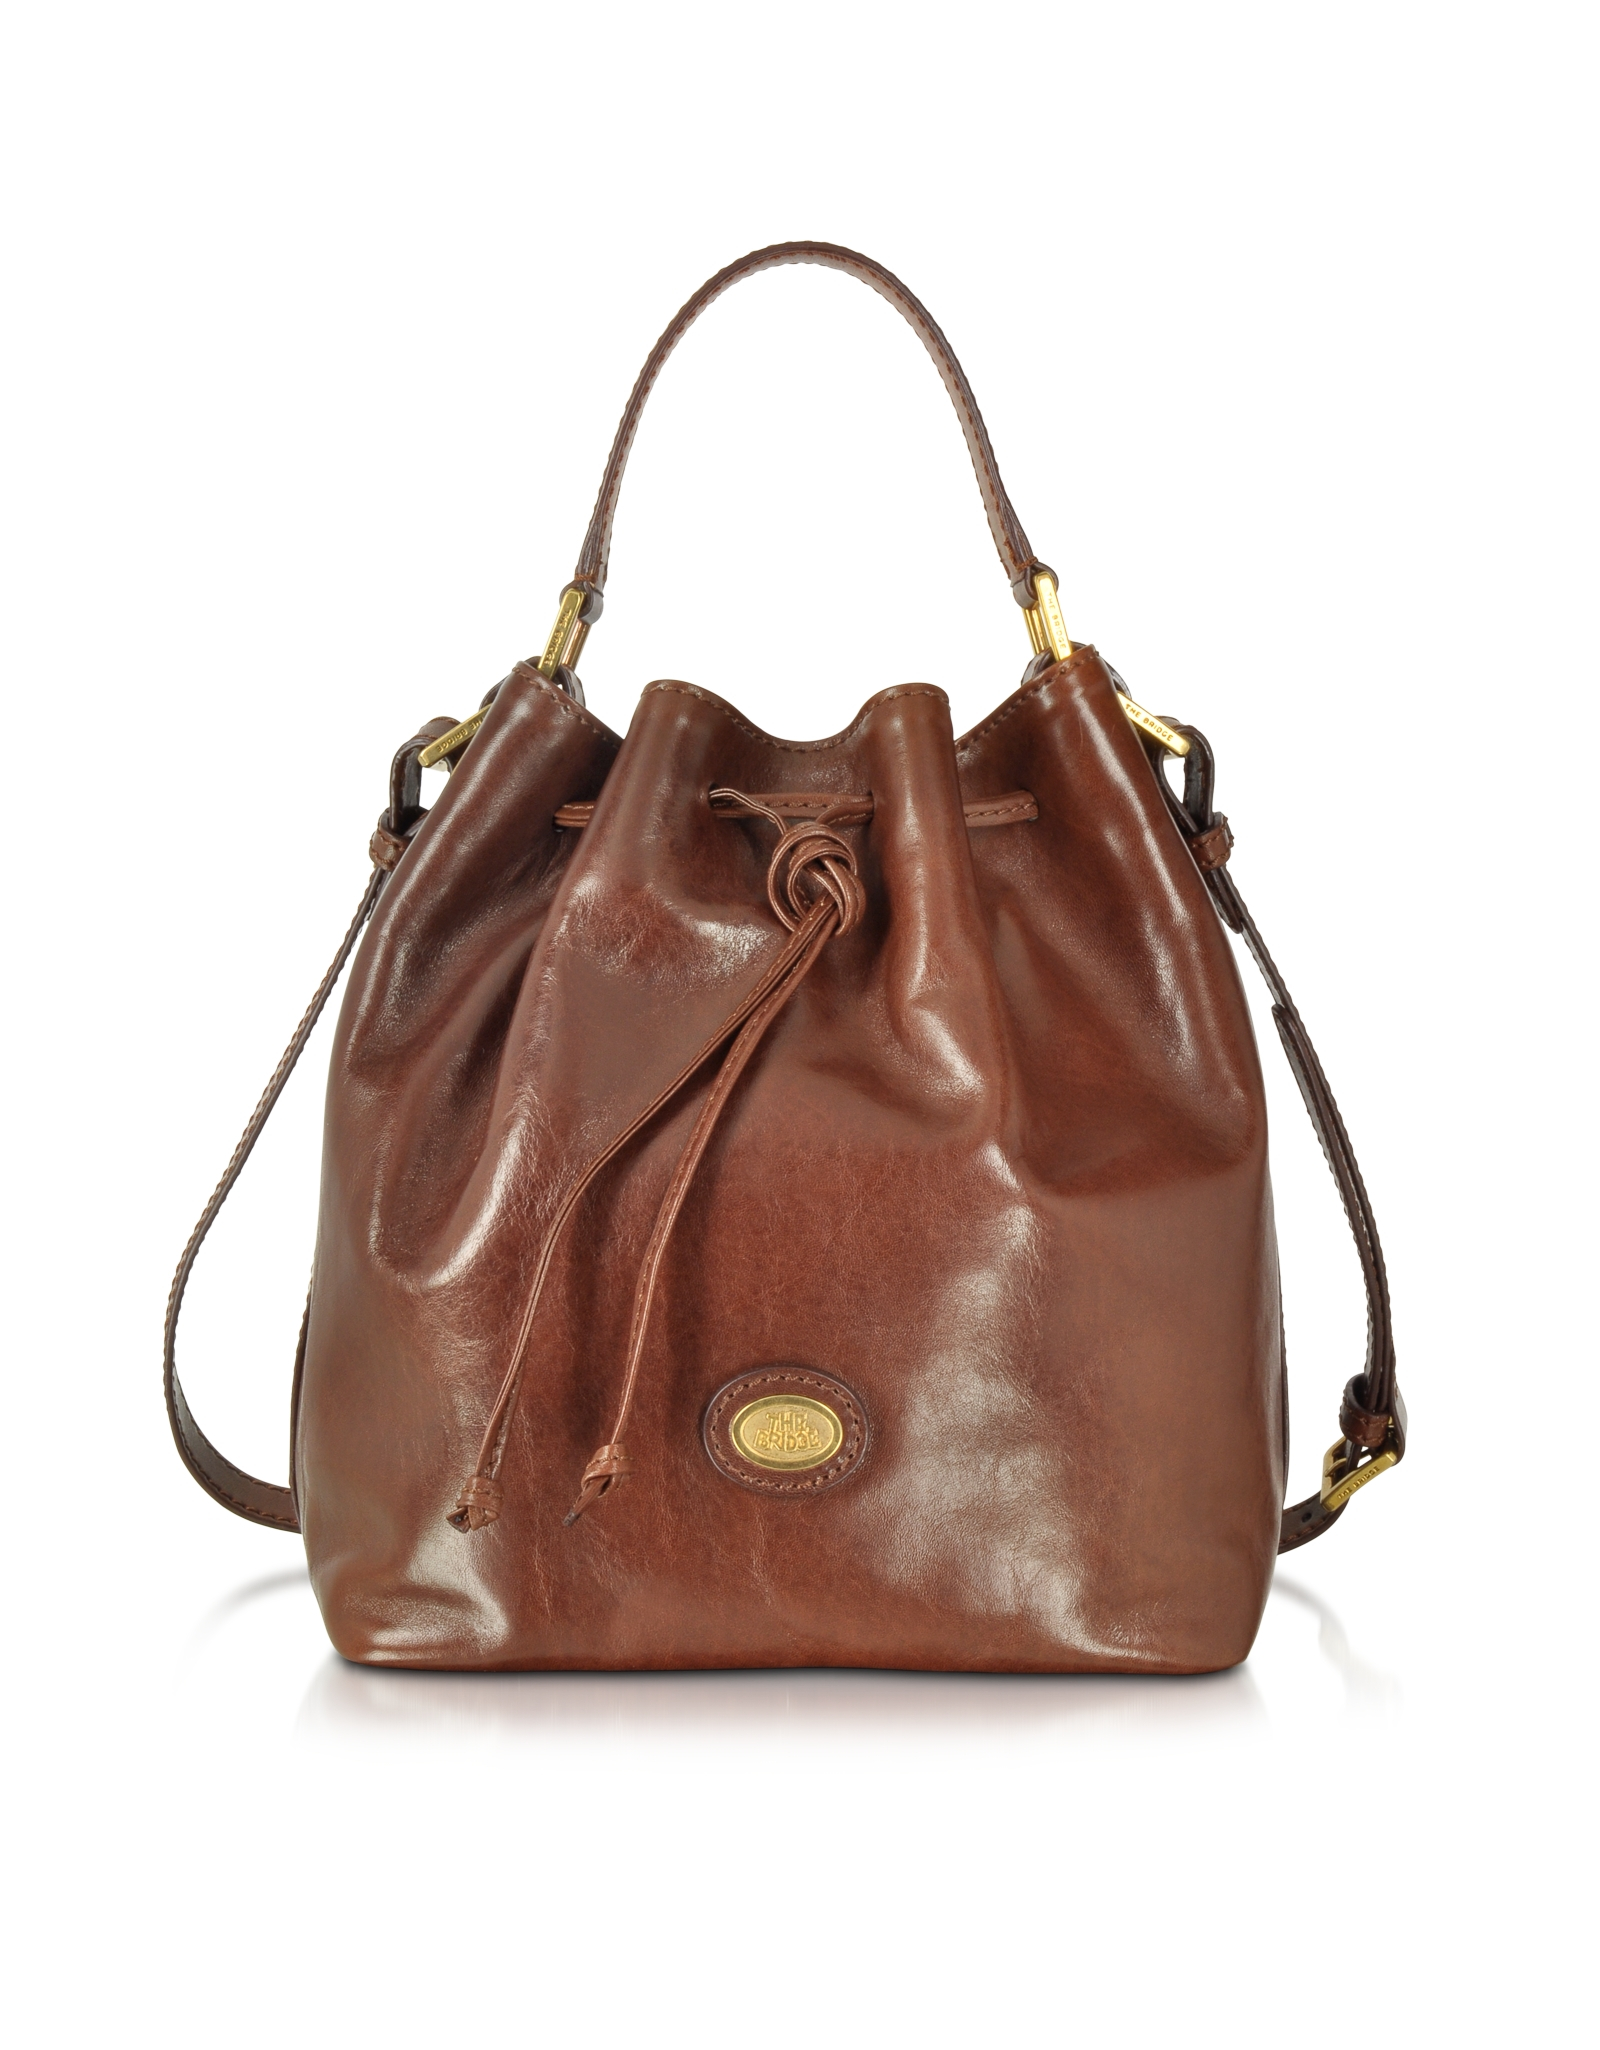 6738fe4dcbc ... hot new products e6115 5527e Lyst - The Bridge Dark Brown Leather  Bucket Bag in Brown ...